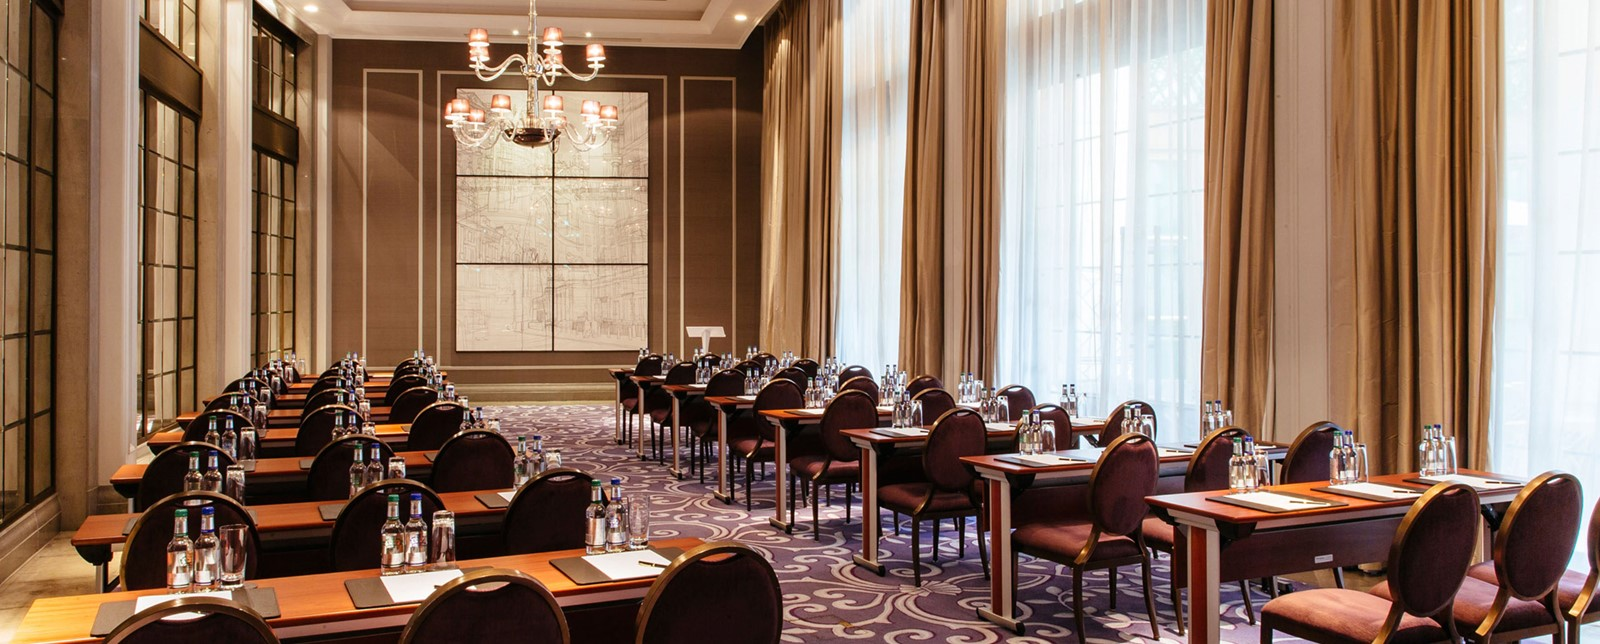 corinthia london meetings and events